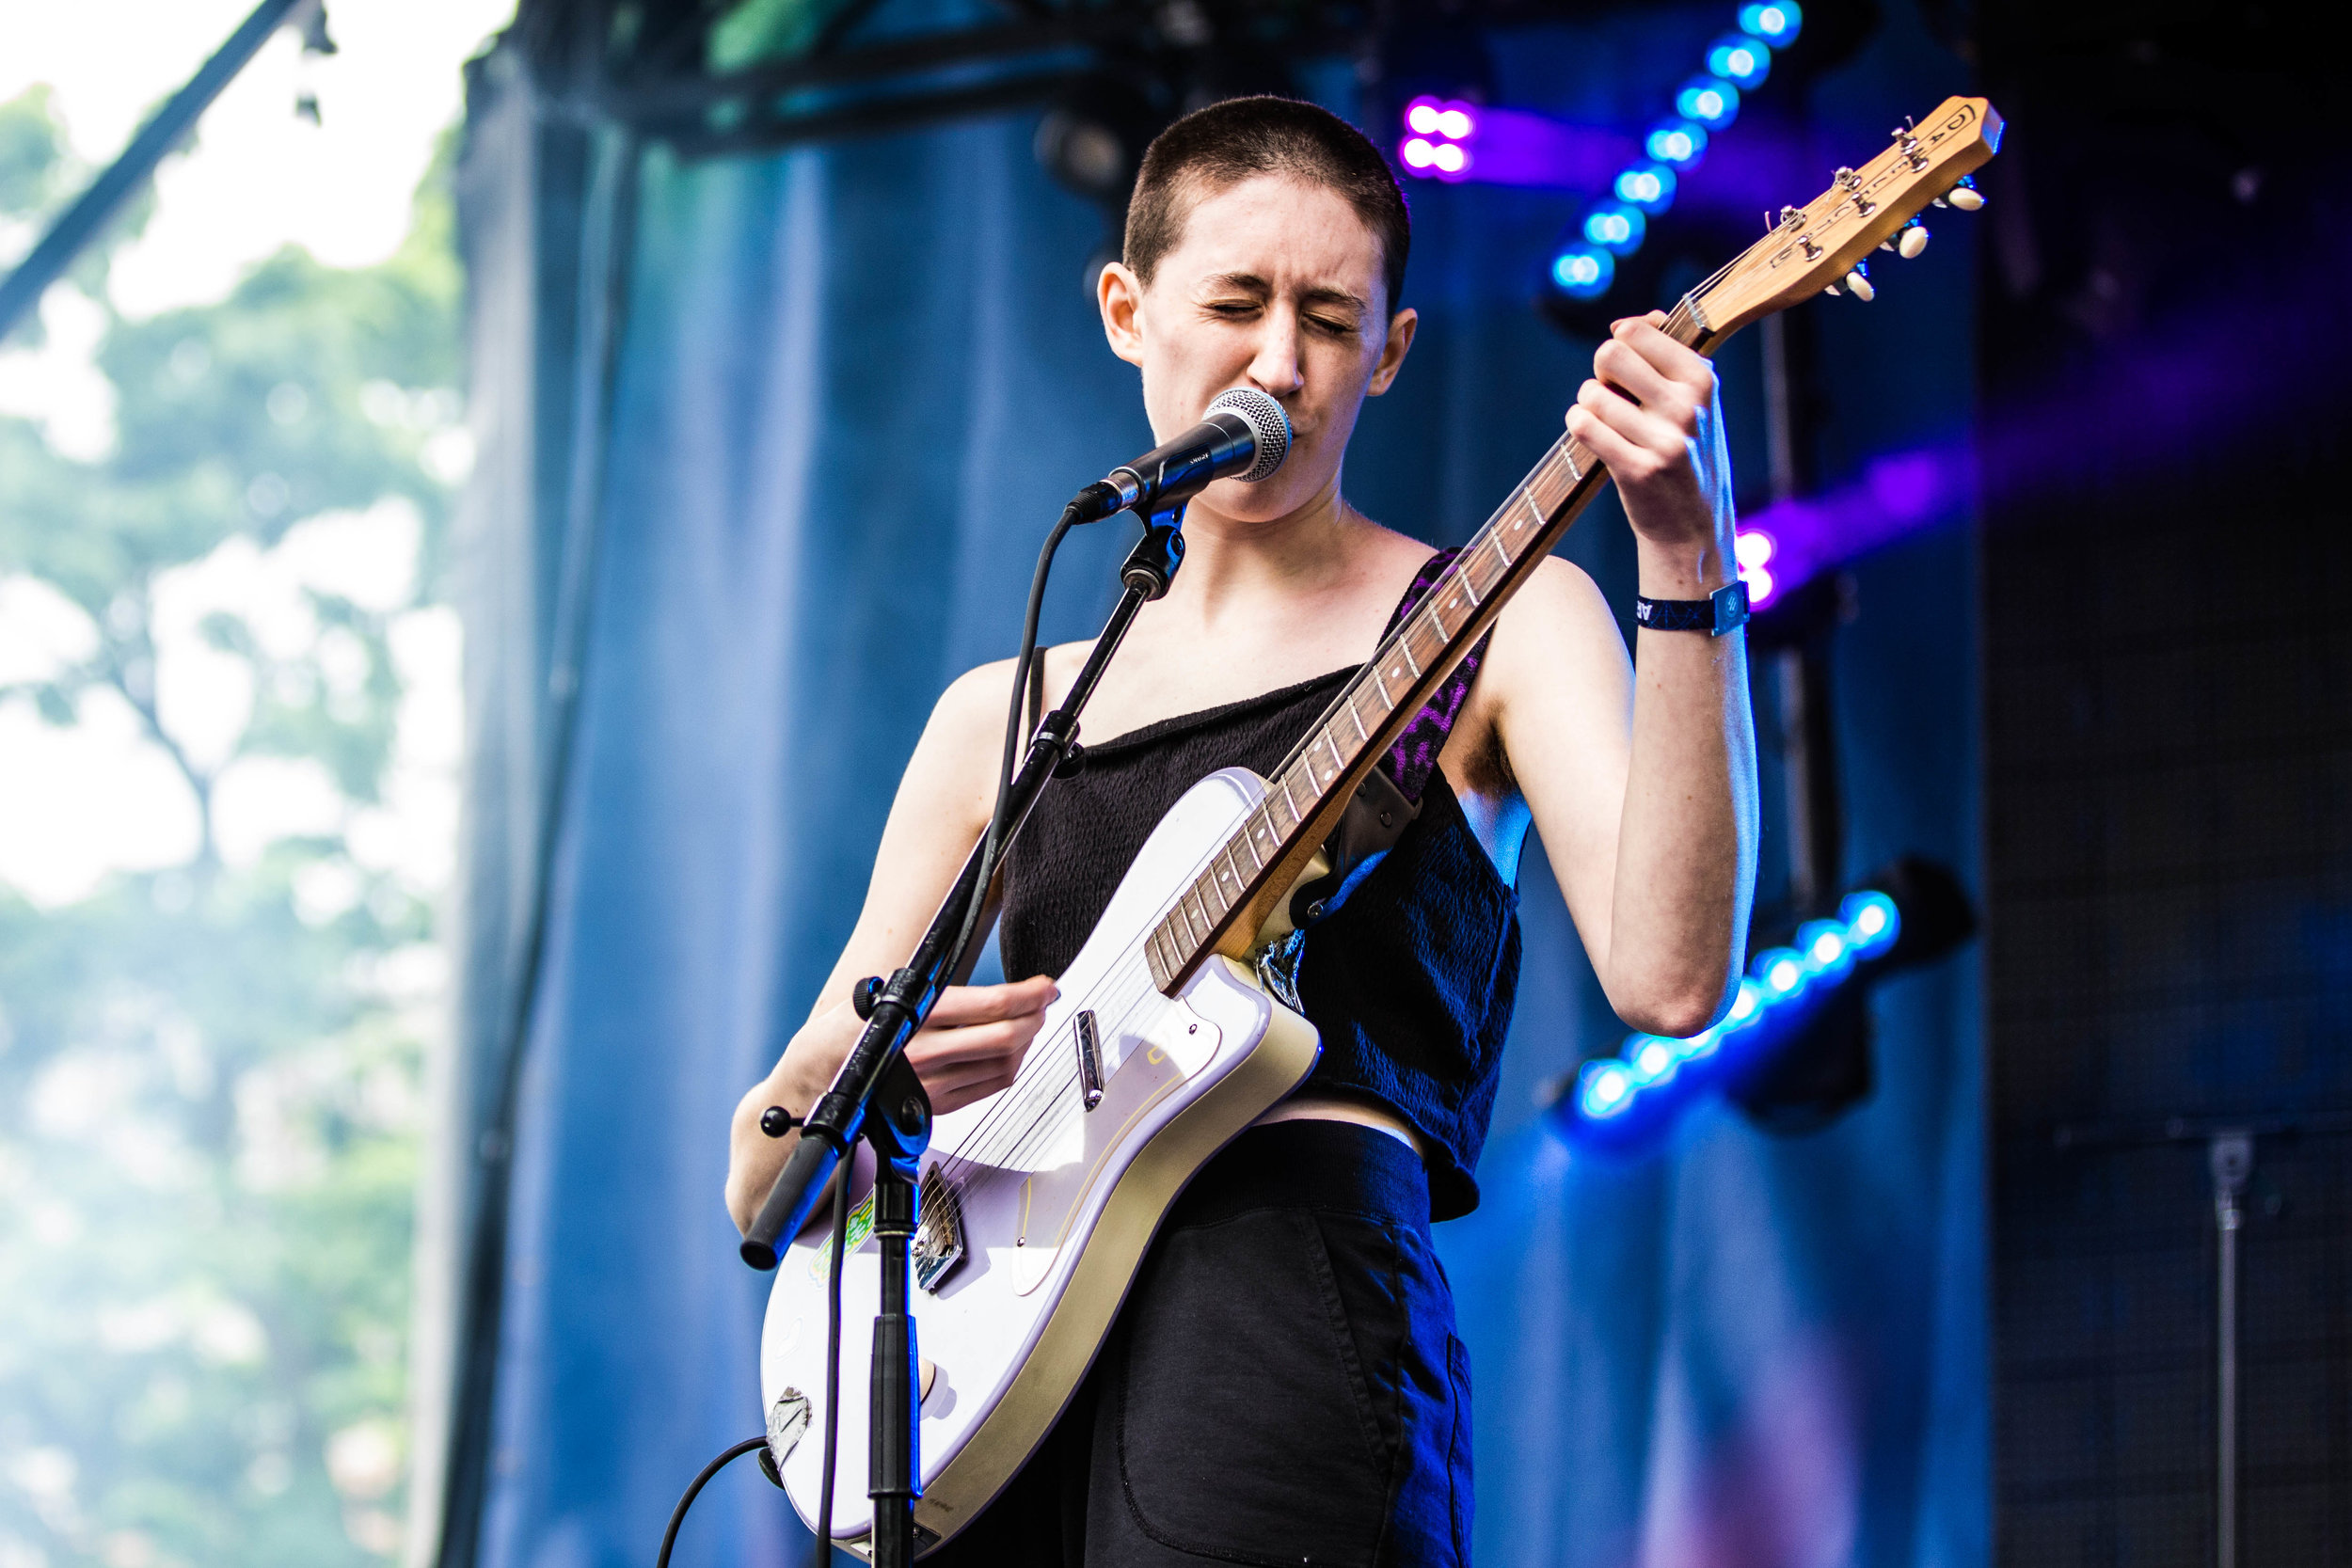 Great Kline, AKA Frankie Cosmos playing her heart out